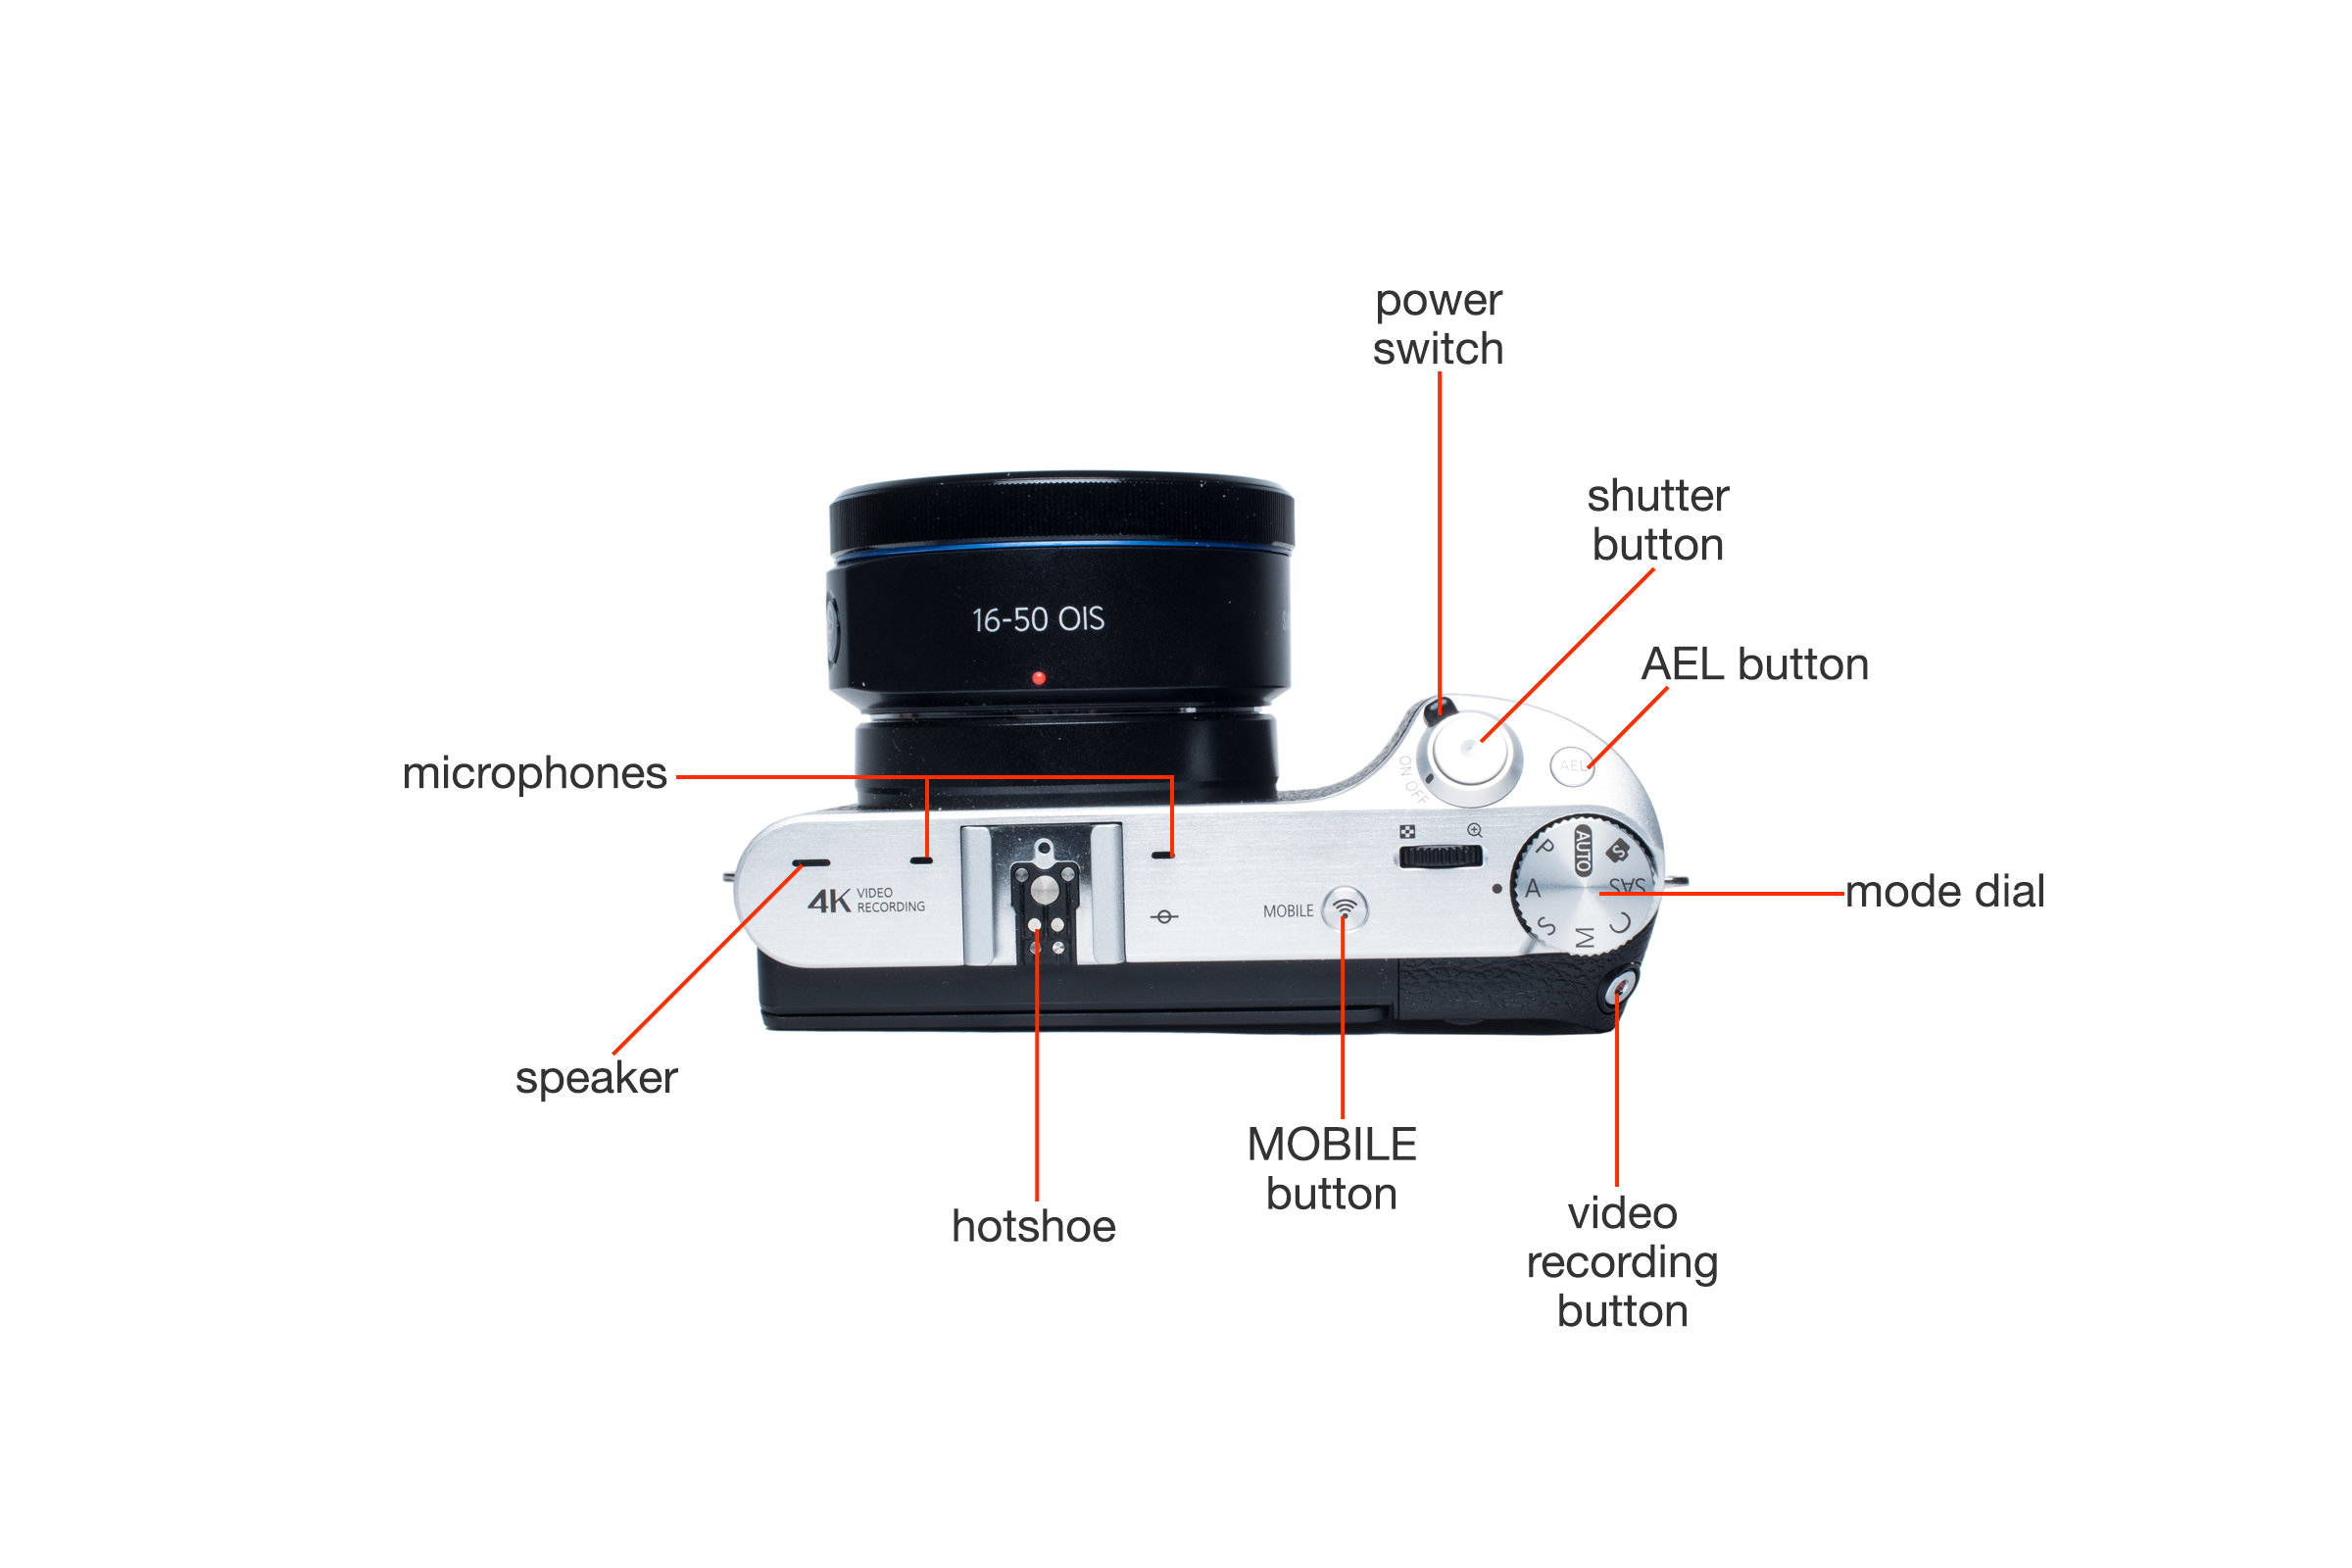 Top view of the Samsung NX500.